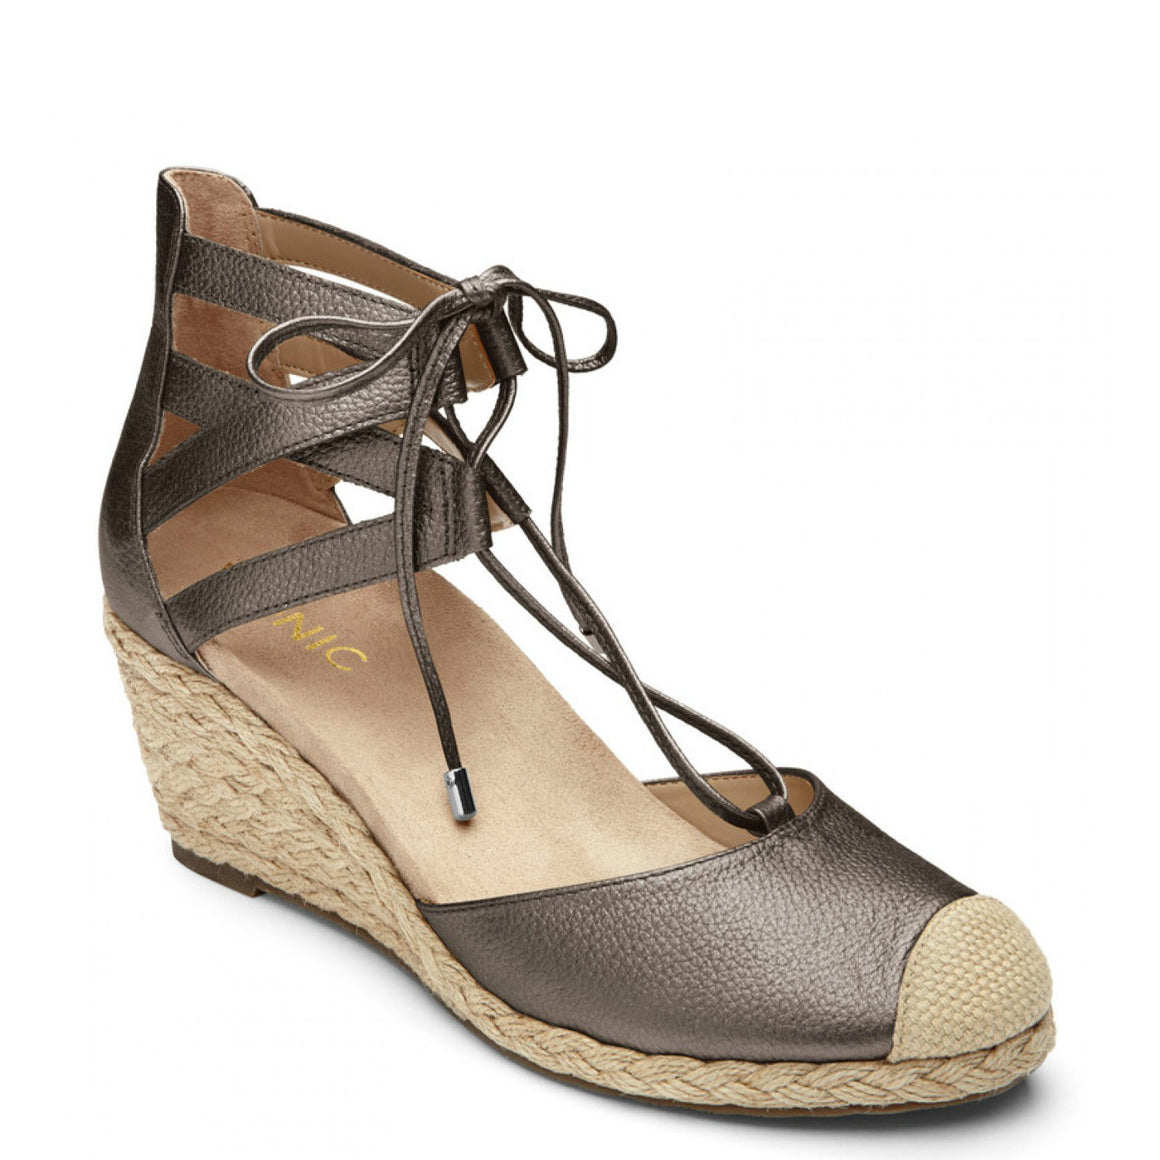 Vionic Women's Calypso Espadrille Wedge - Pewter